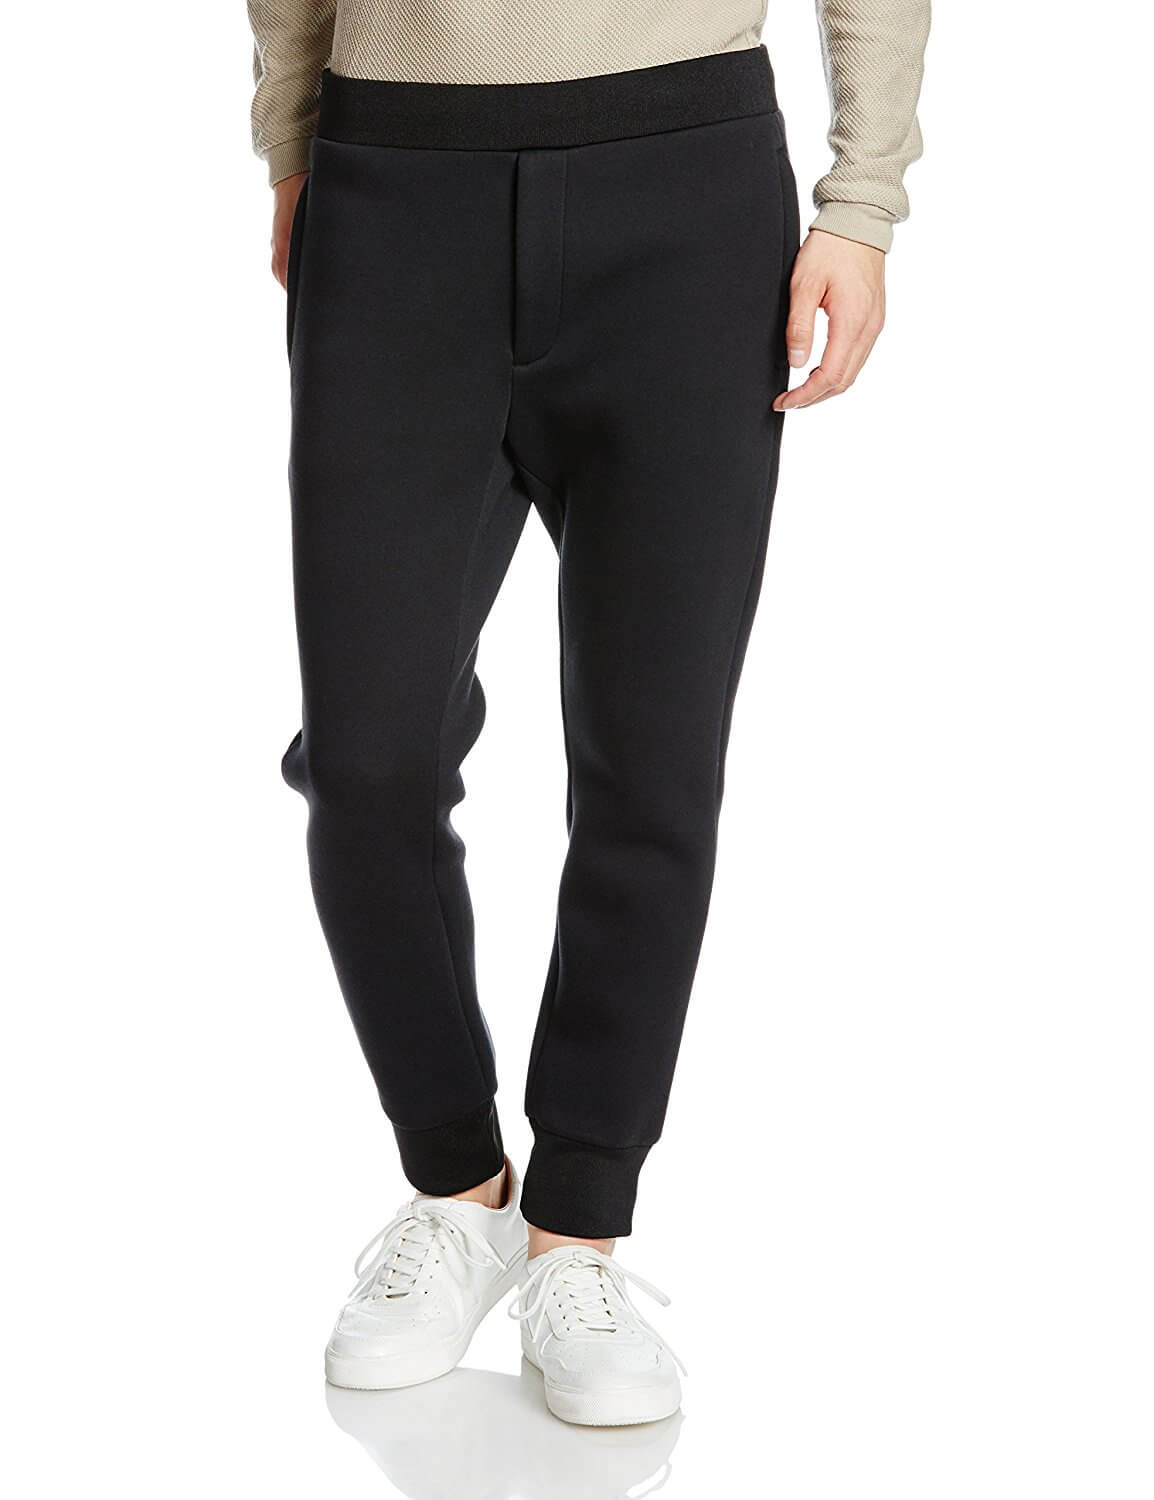 BLACKBARRETT by Neil Barrett FUSED TERRY SWEATPANTS